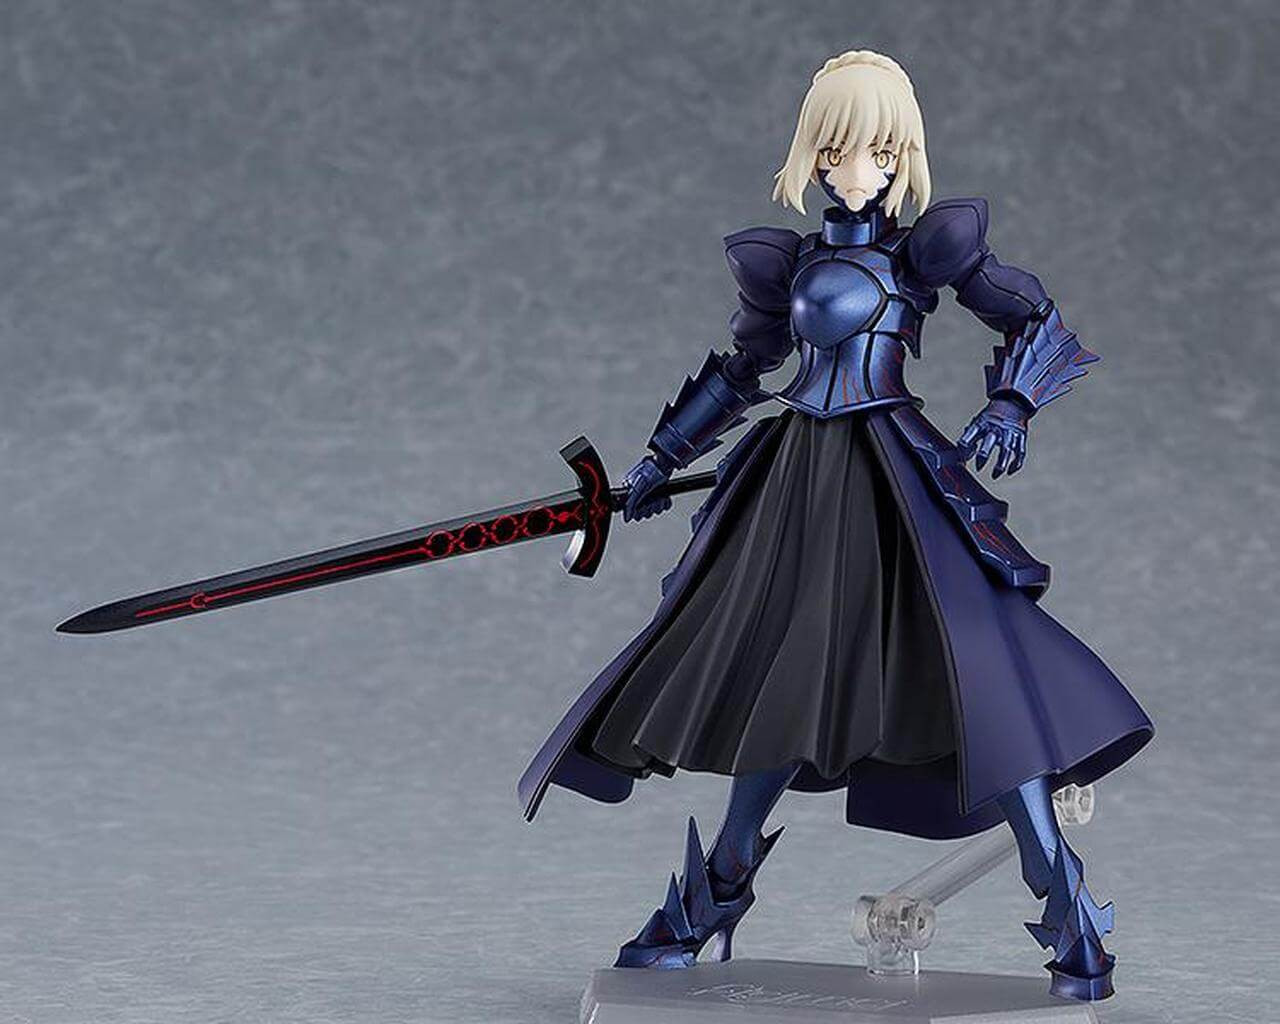 100/% authentic Figma 432 Fate Stay Night Saber Alter 2.0 figure Max Factory